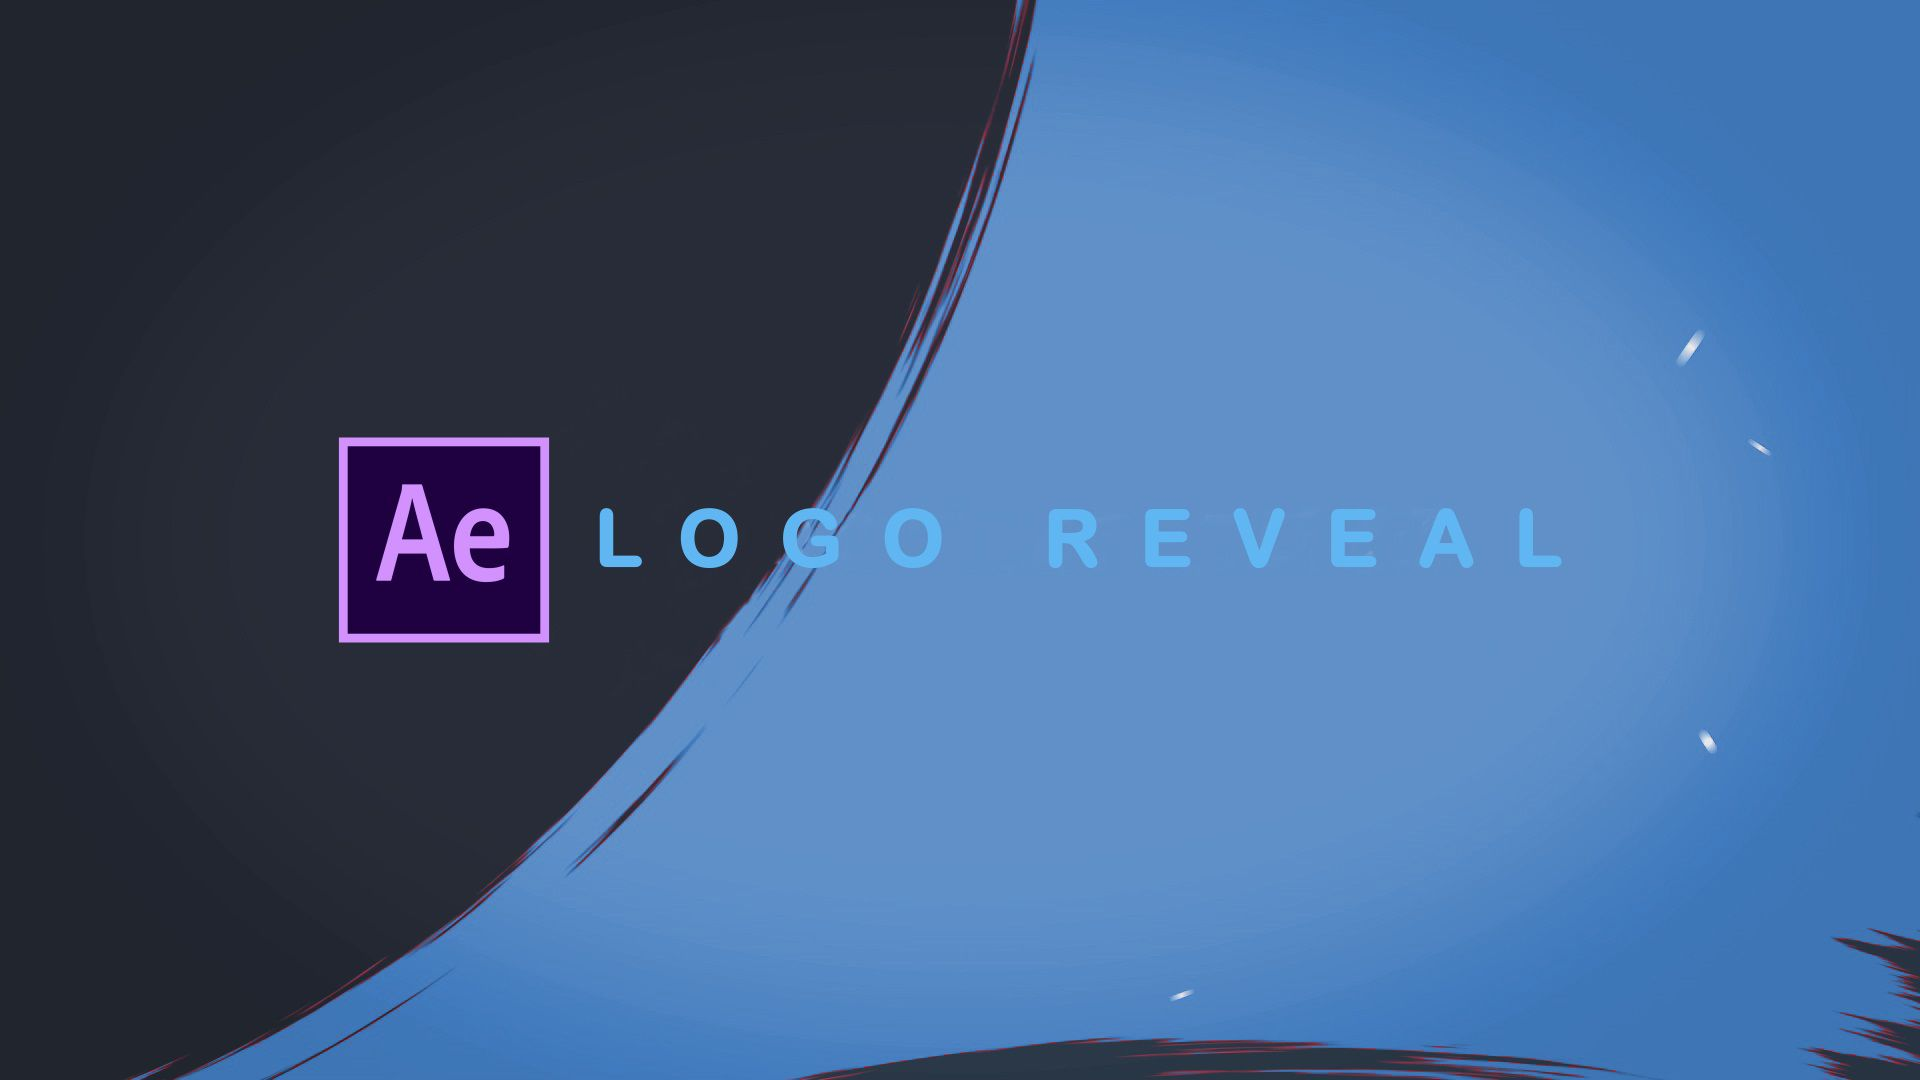 008 Unique Free Adobe After Effect Logo Intro Template High Resolution  TemplatesFull